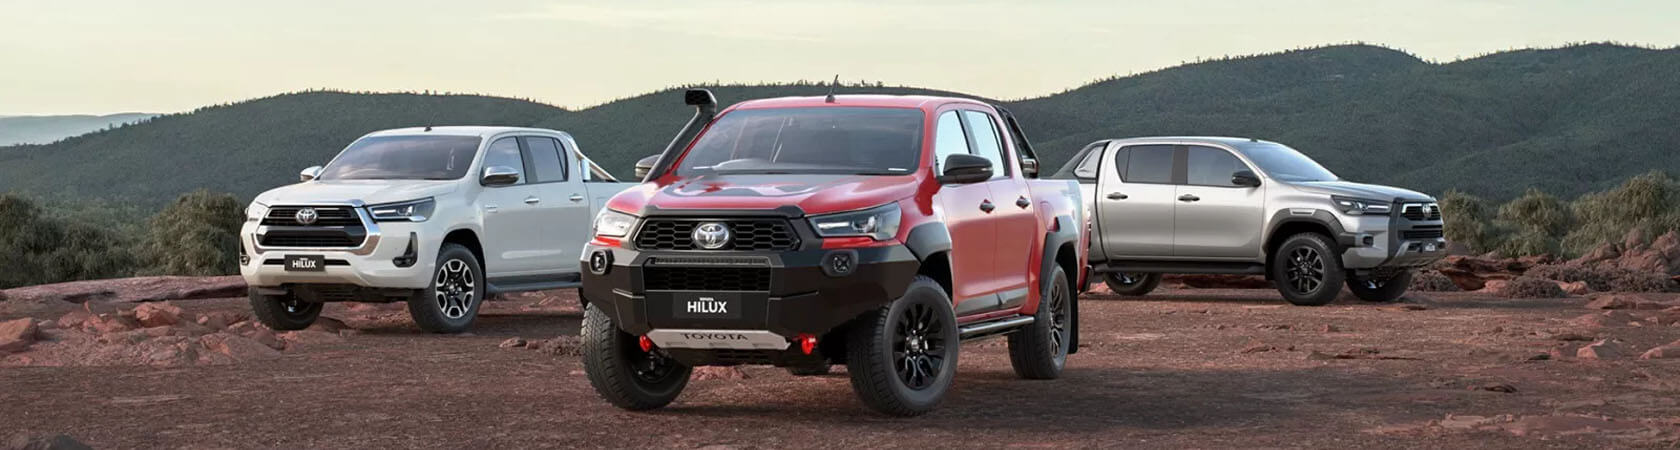 Peter Kittle Toyota - Port Lincoln HiLux